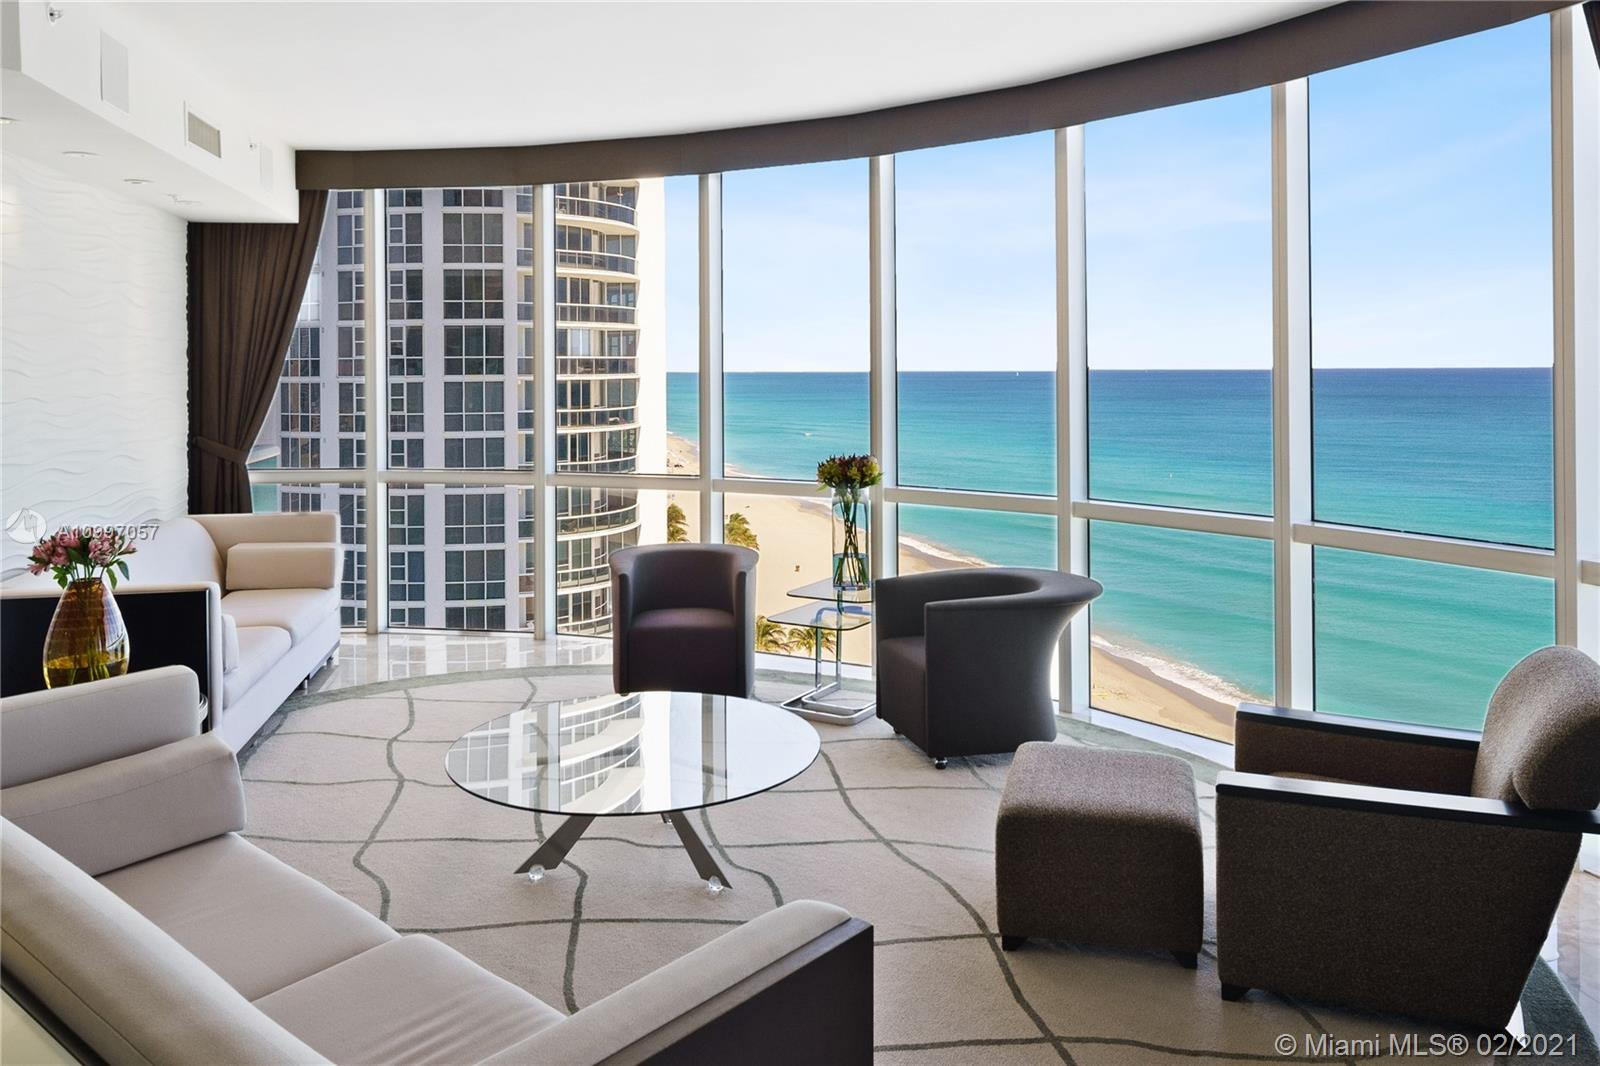 Spectacular beachfront residence, designer interiors by Steven G, gorgeous ocean views from every window, 4 beds (2 master), 4.5 baths, 2 gourmet kitchens, media room, bar. Building offers spa, gym, tennis, 4 pools, valet parking & 24 hour security. Consists of 2 combined units 1509 & 1507.